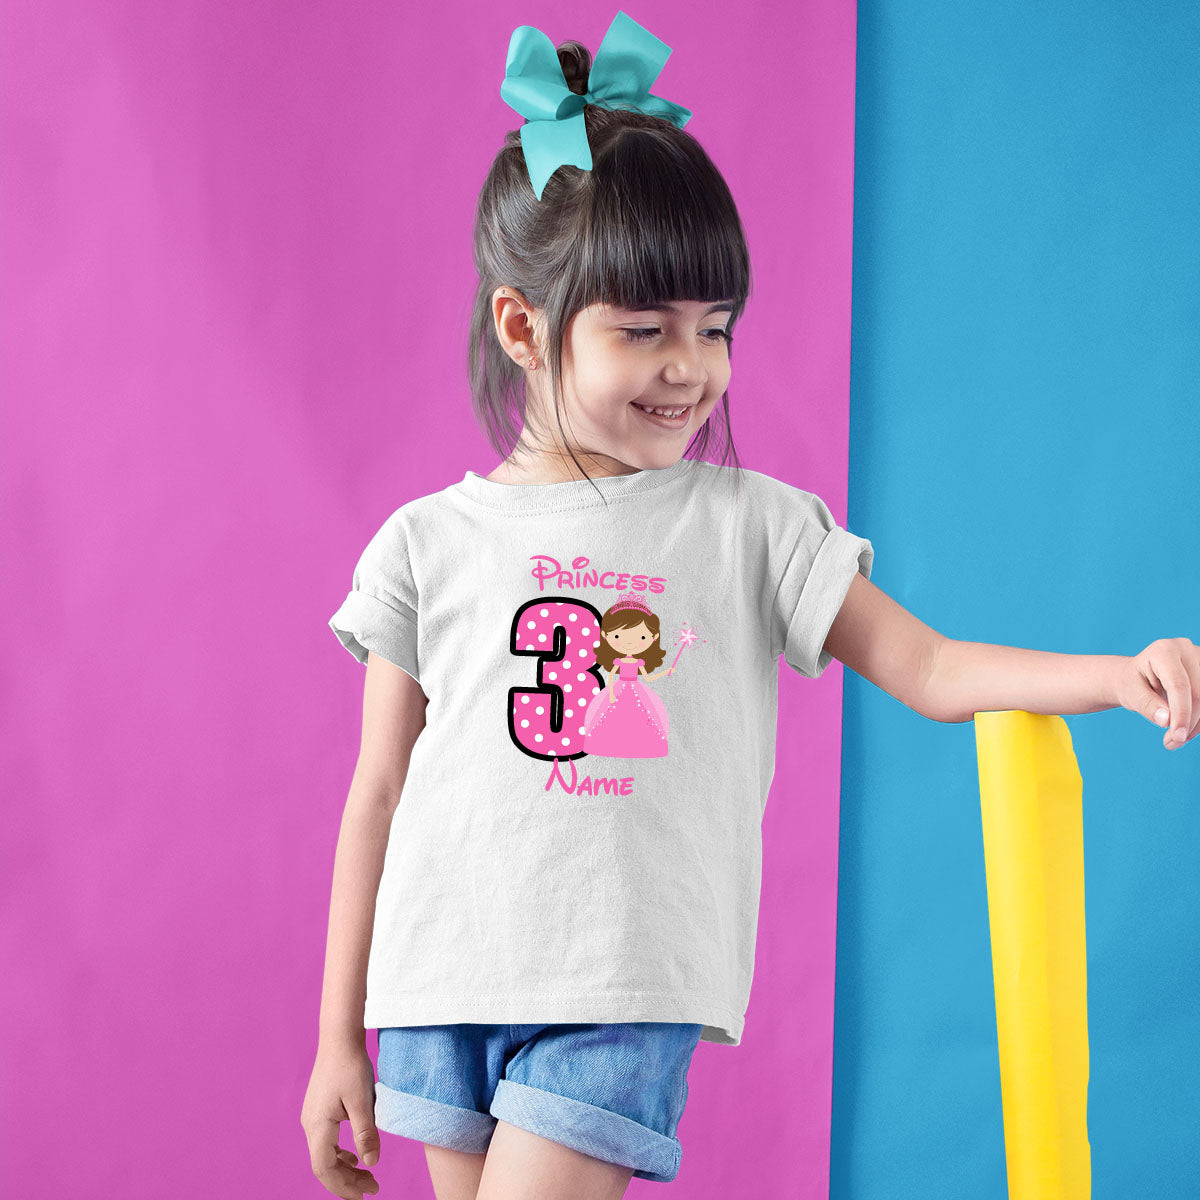 Sprinklecart Little Princess Birthday T Shirt | Personalized 3rd Birthday Dress for Your Little Princess